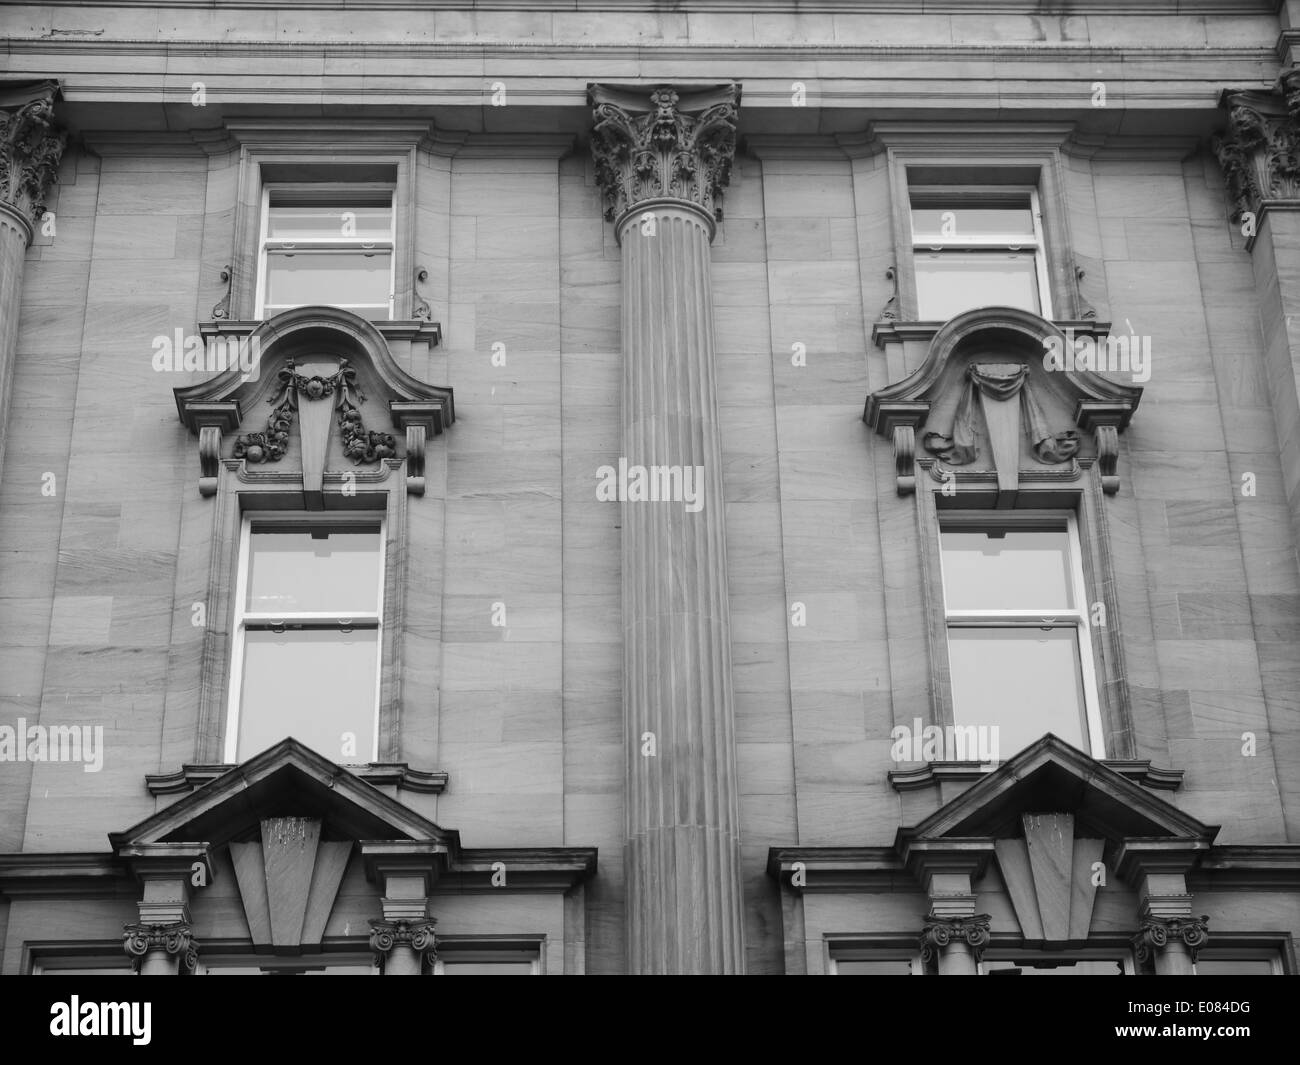 Architectural detail of an historic building in Newcastle upon Tyne, England, UK - Stock Image